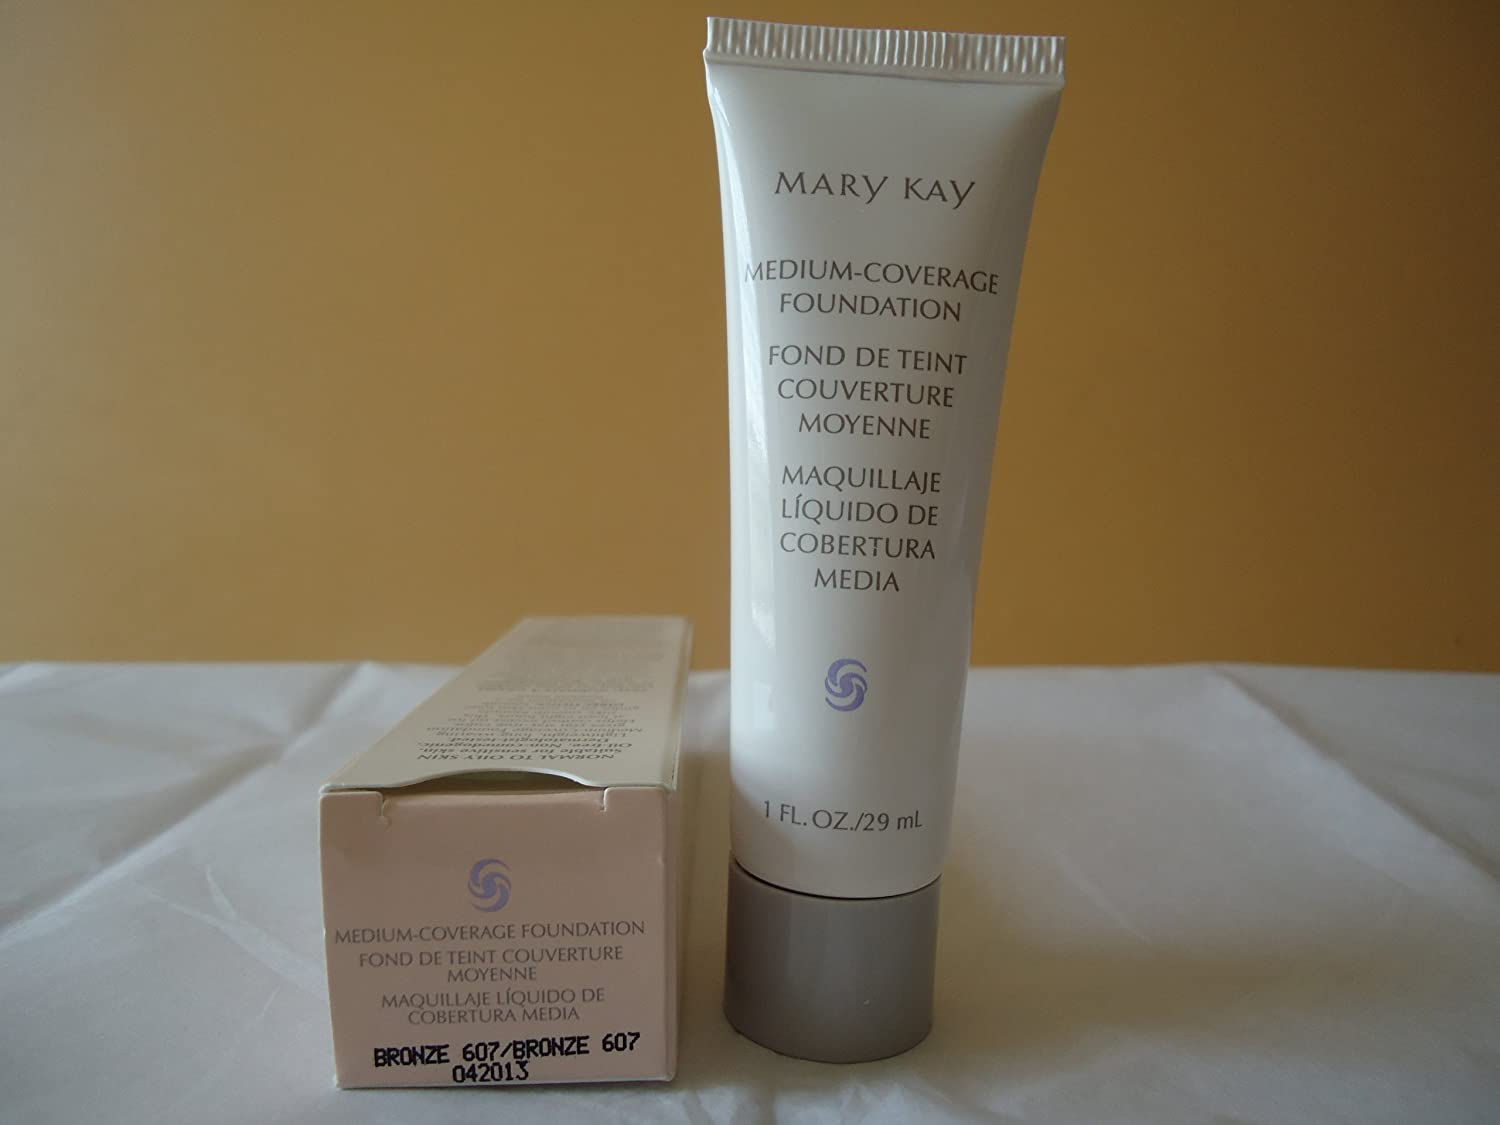 Mary Kay Medium Coverage Foundation Bronze 607